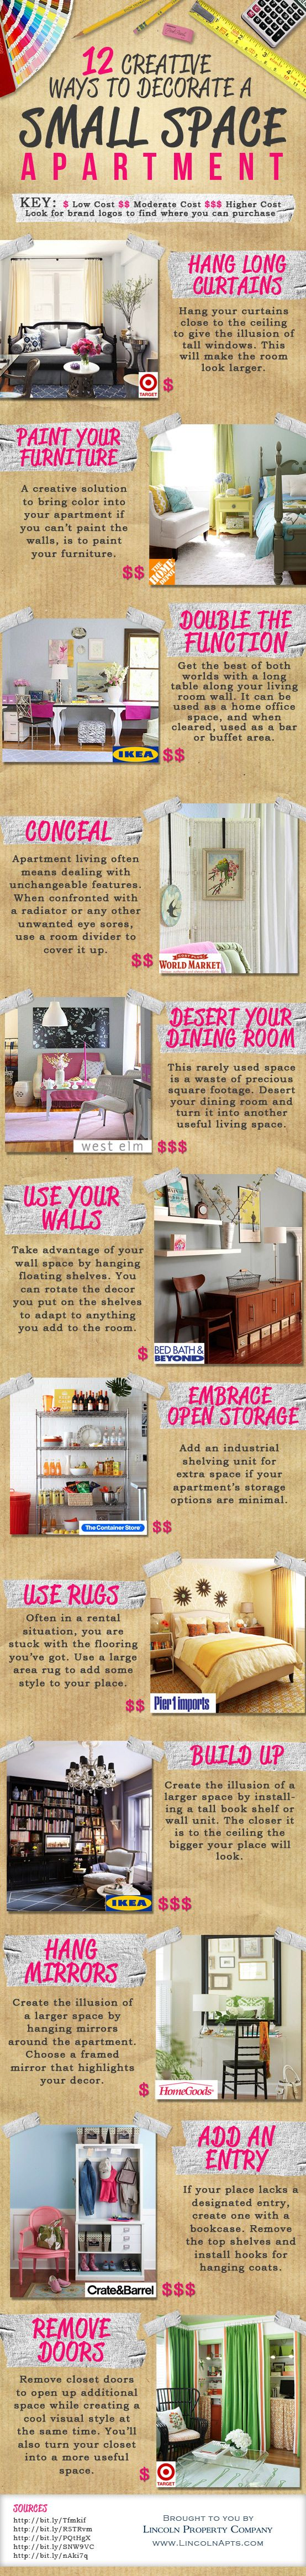 How to decorate small spaces